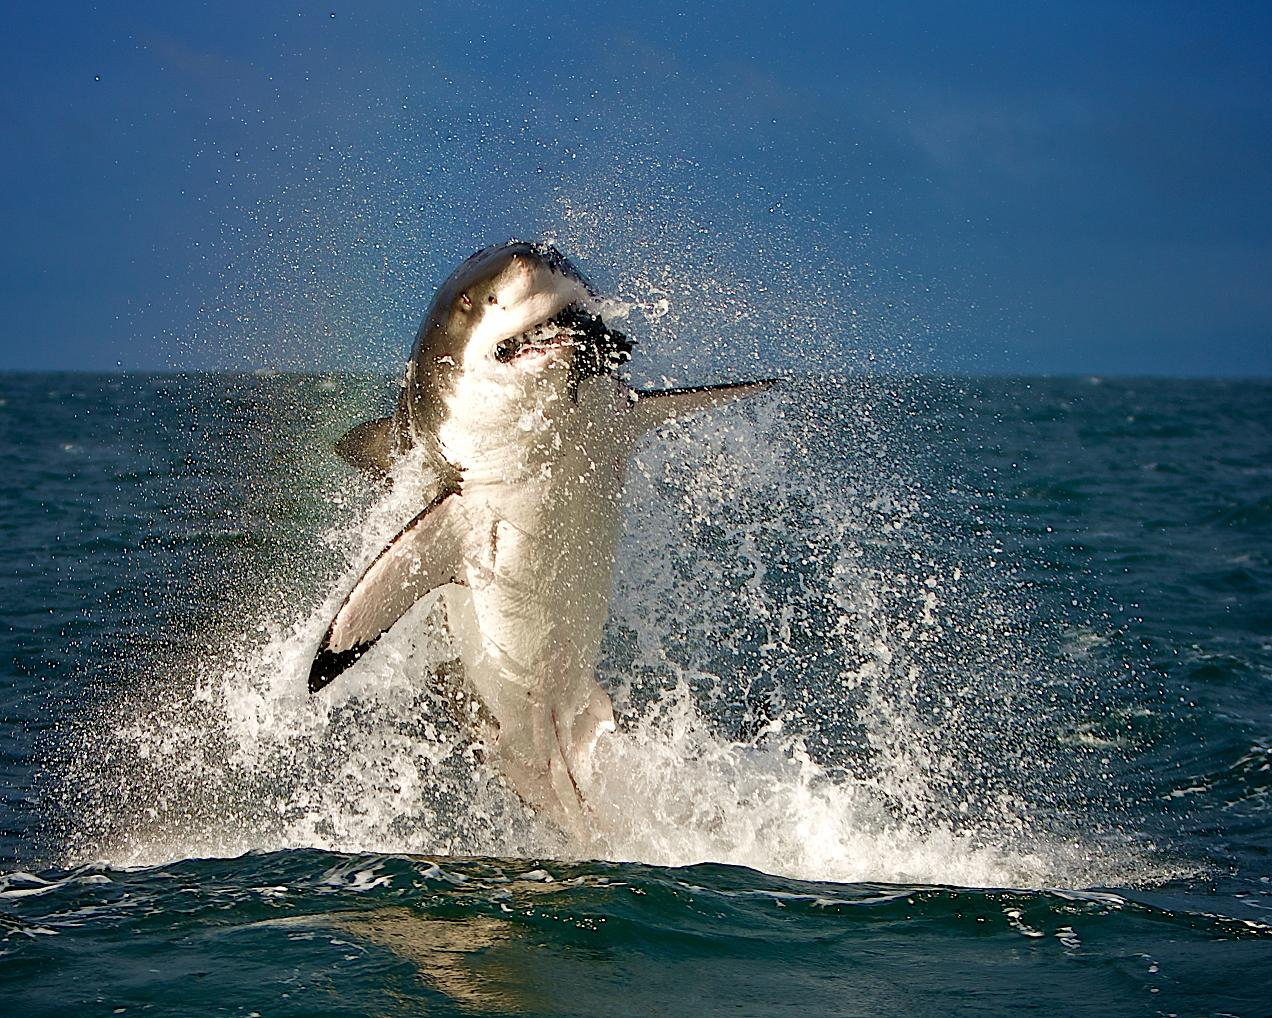 http://2.bp.blogspot.com/--vr2D0ExJP0/UFMxooV7N0I/AAAAAAAAG3w/3DC4KRV7Qao/s1600/Shark+Catch+Little+Fish.JPG